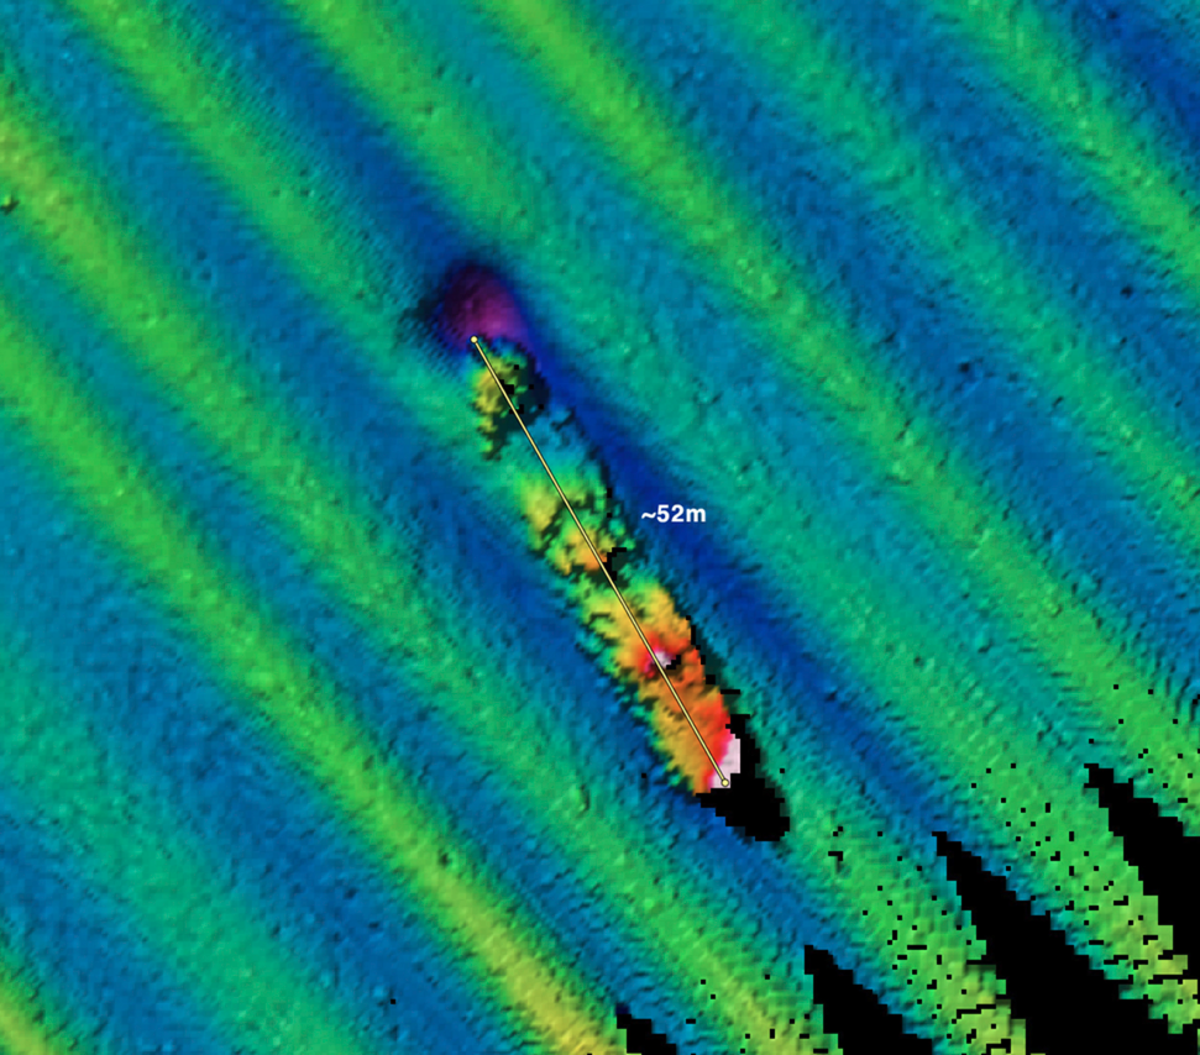 In September 2009, a NOAA/Fugro multibeam sonar survey of the area around Farallon Islands documented a probable shipwreck with an estimated length of 170 feet at a depth of 185ft. (NOAA/Fugro)